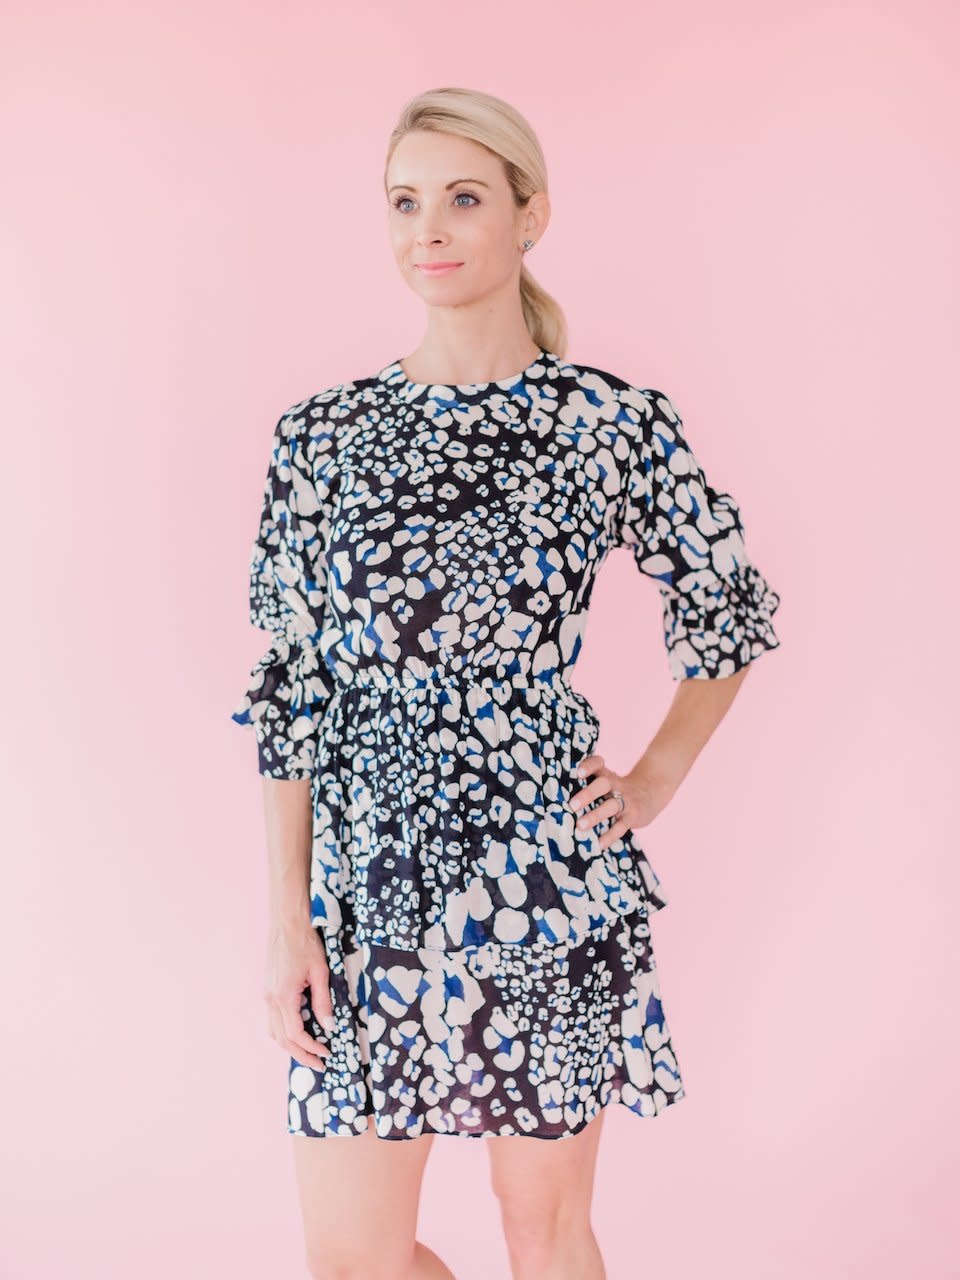 La Roque Rebecca Dress in Black/Blue Animal